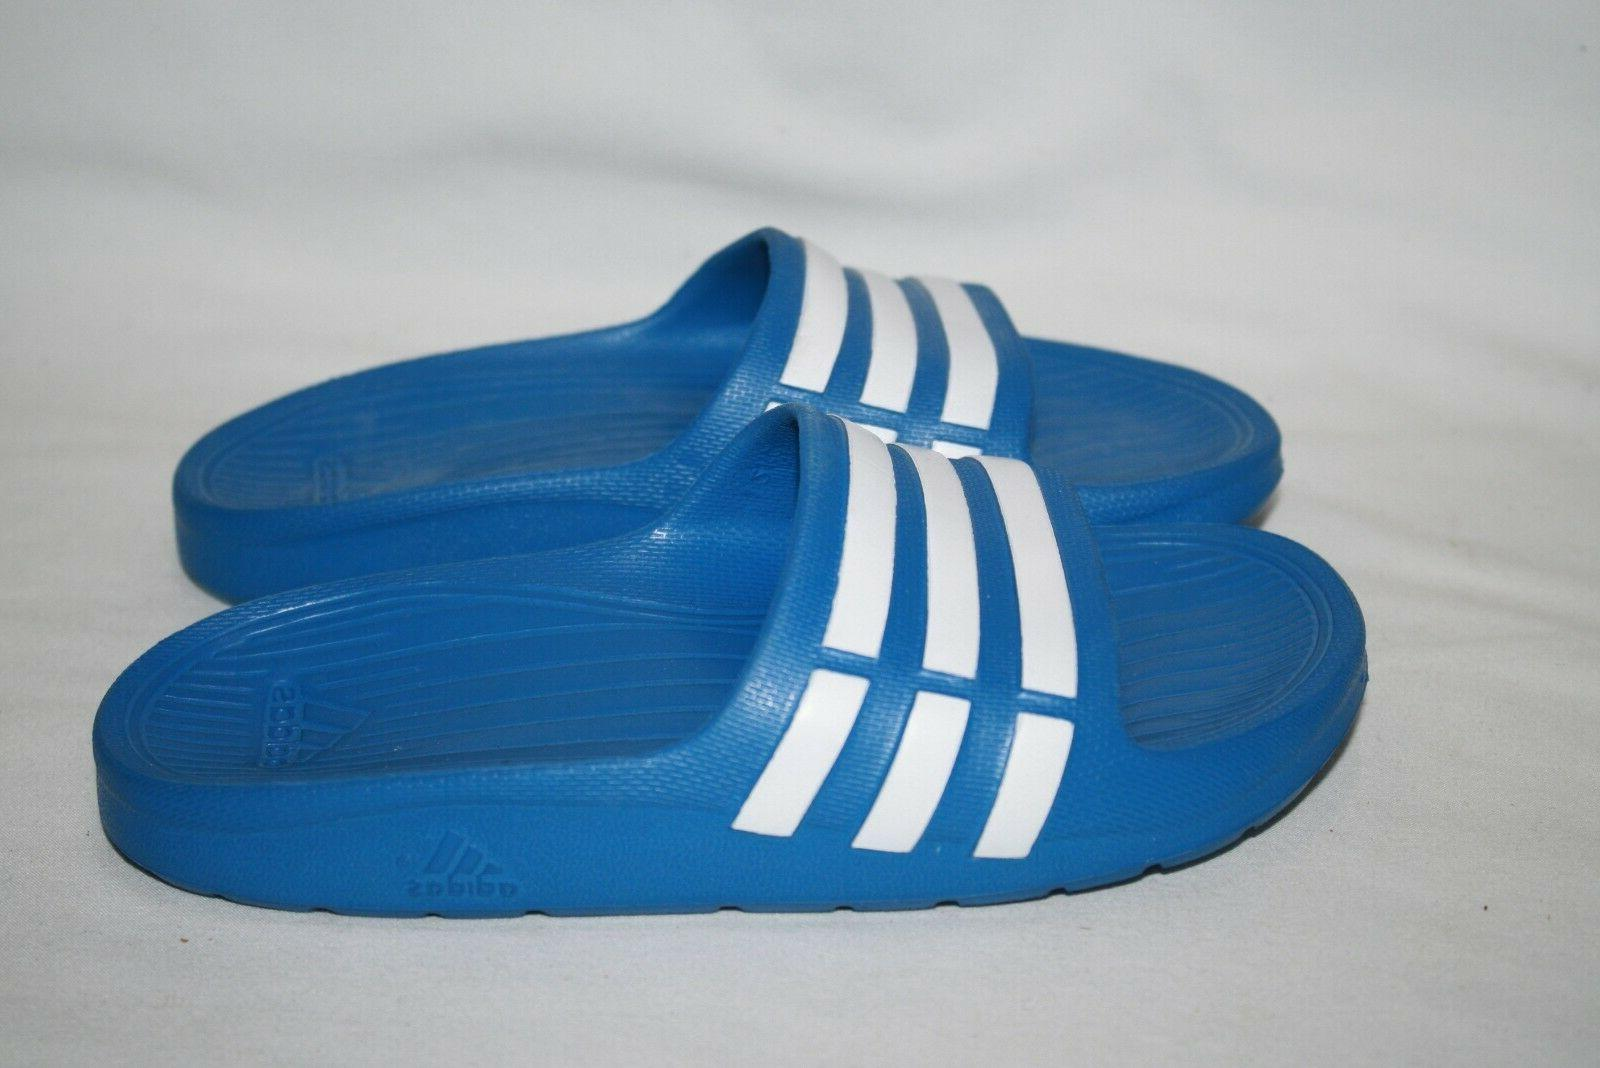 BOYS SANDALS - FOR SIZE